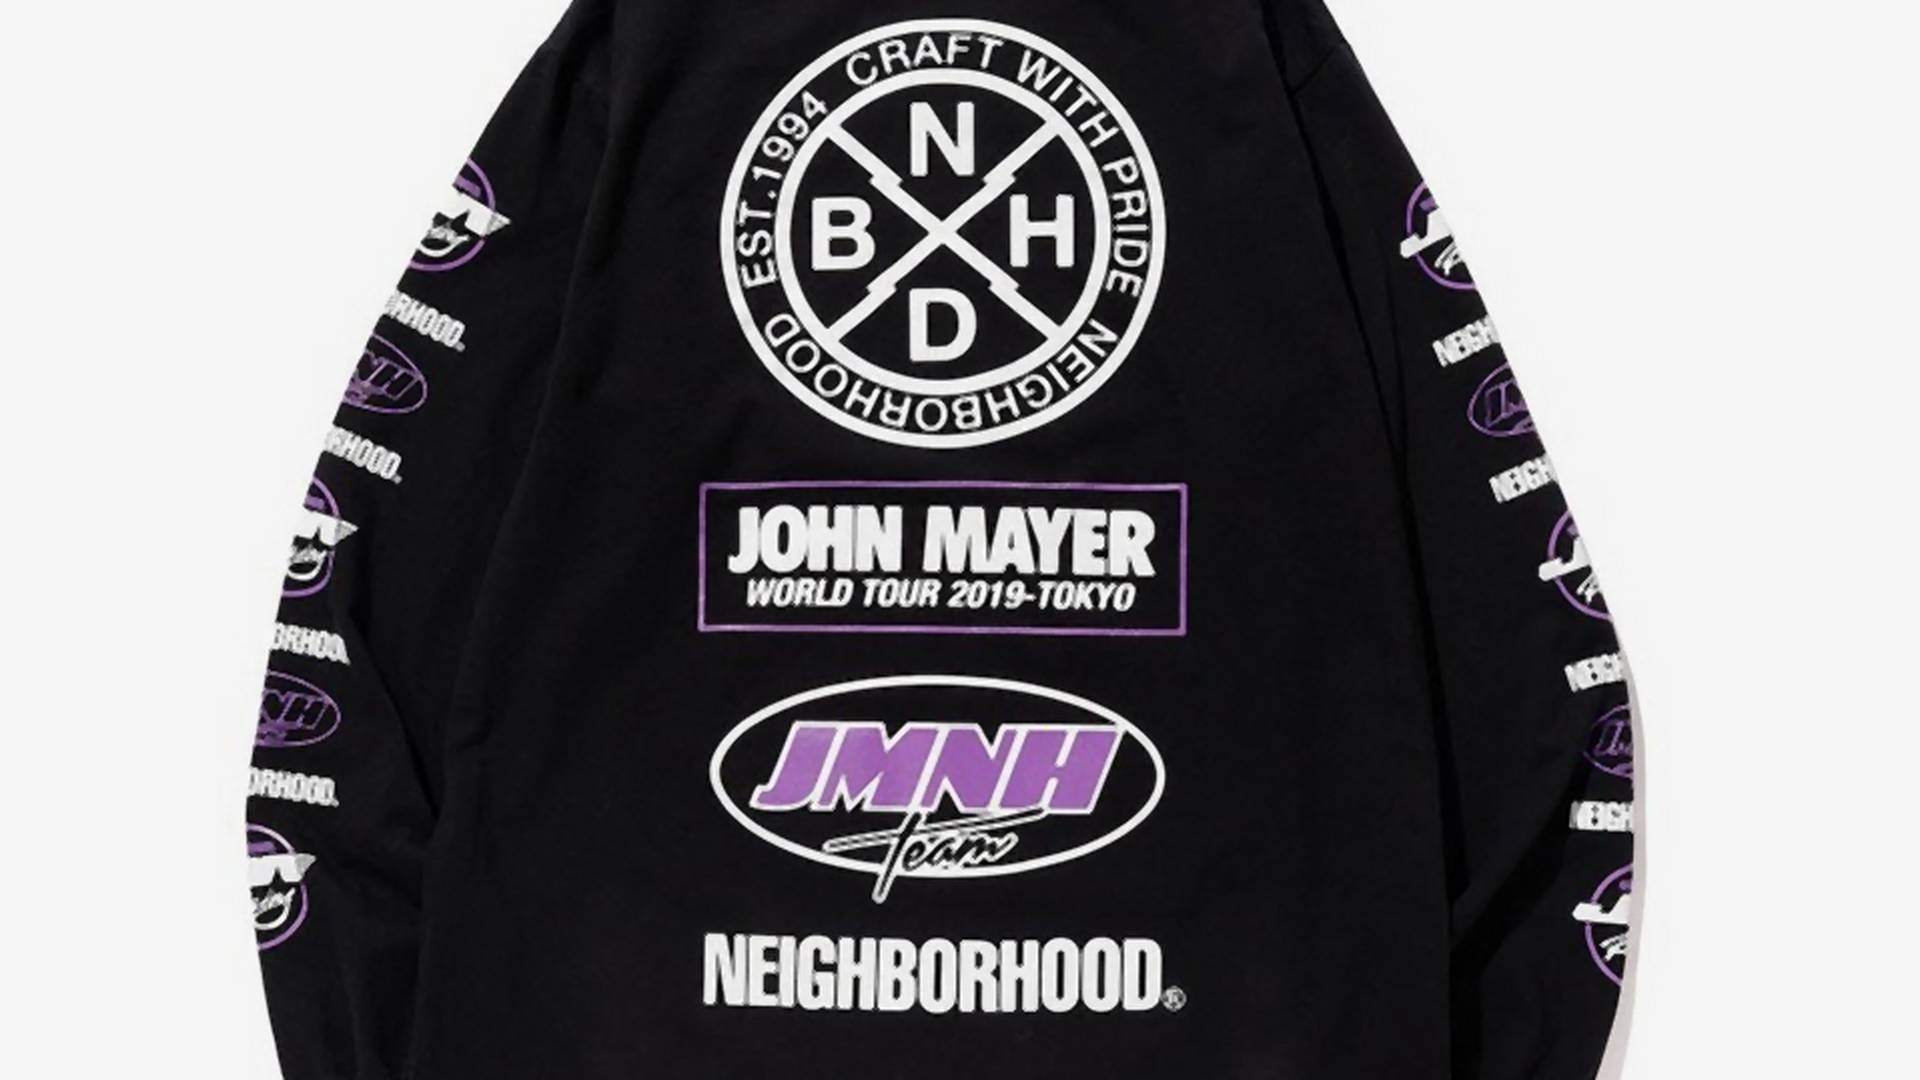 John Mayer bringt Tour-Merch mit Neighbourhood